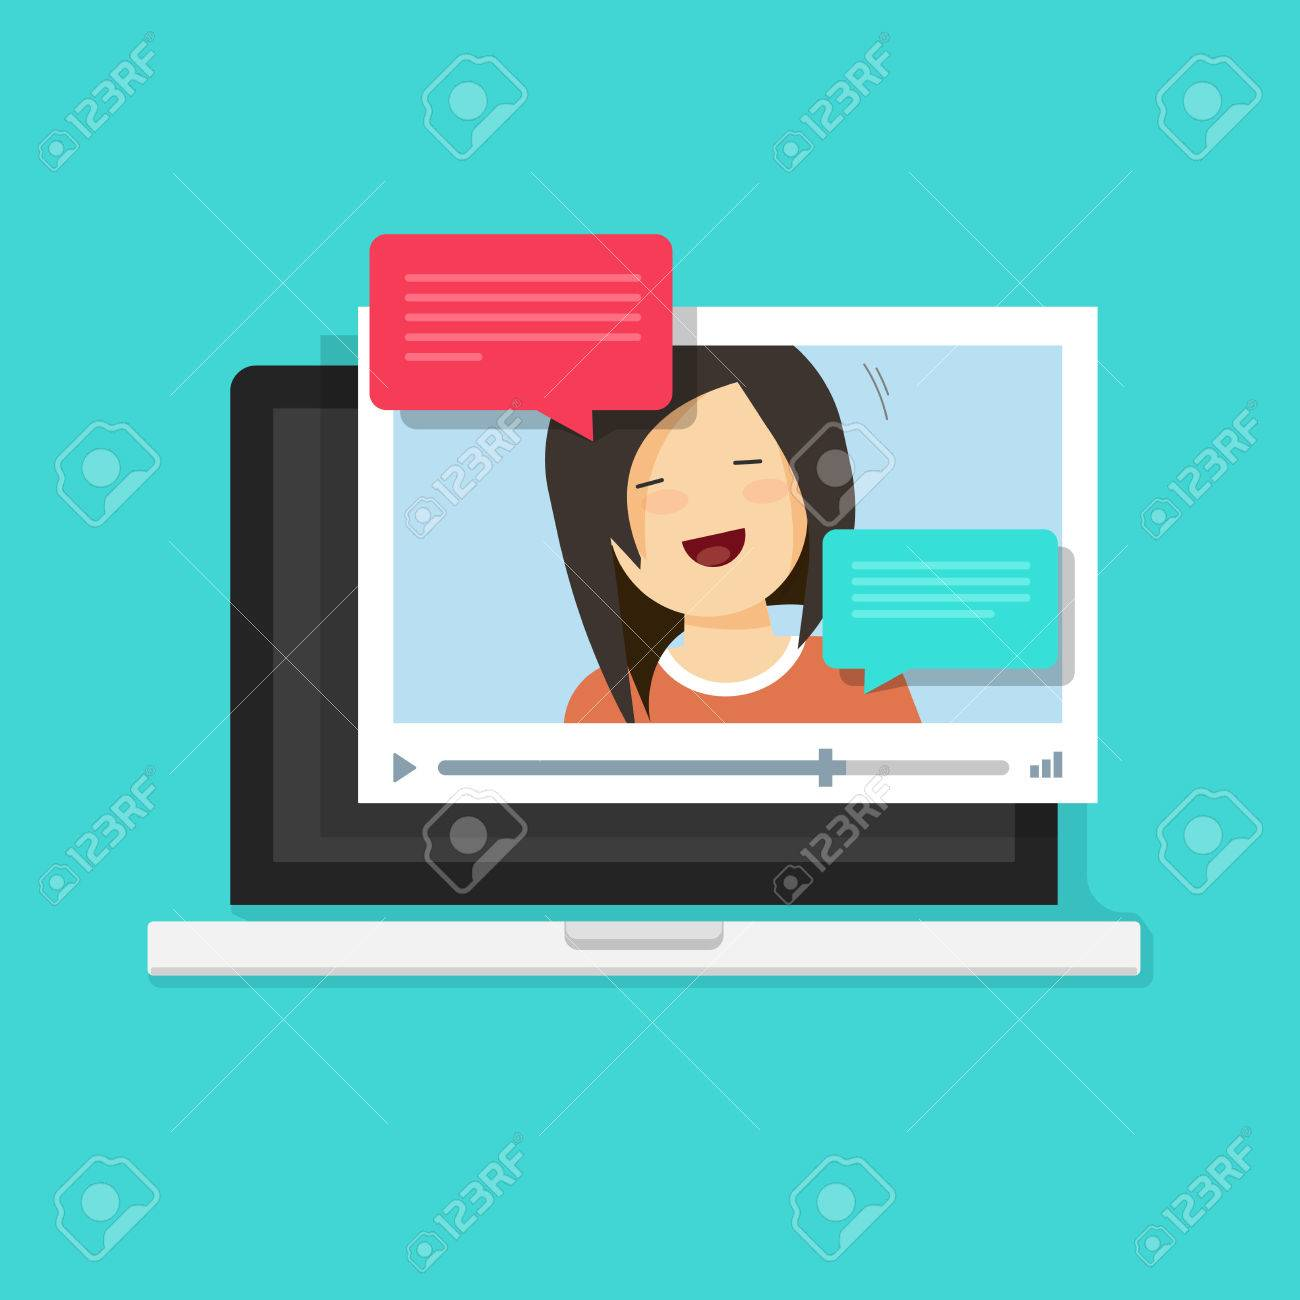 Video Chatting Online On Computer Vector Illustration Flat Cartoon